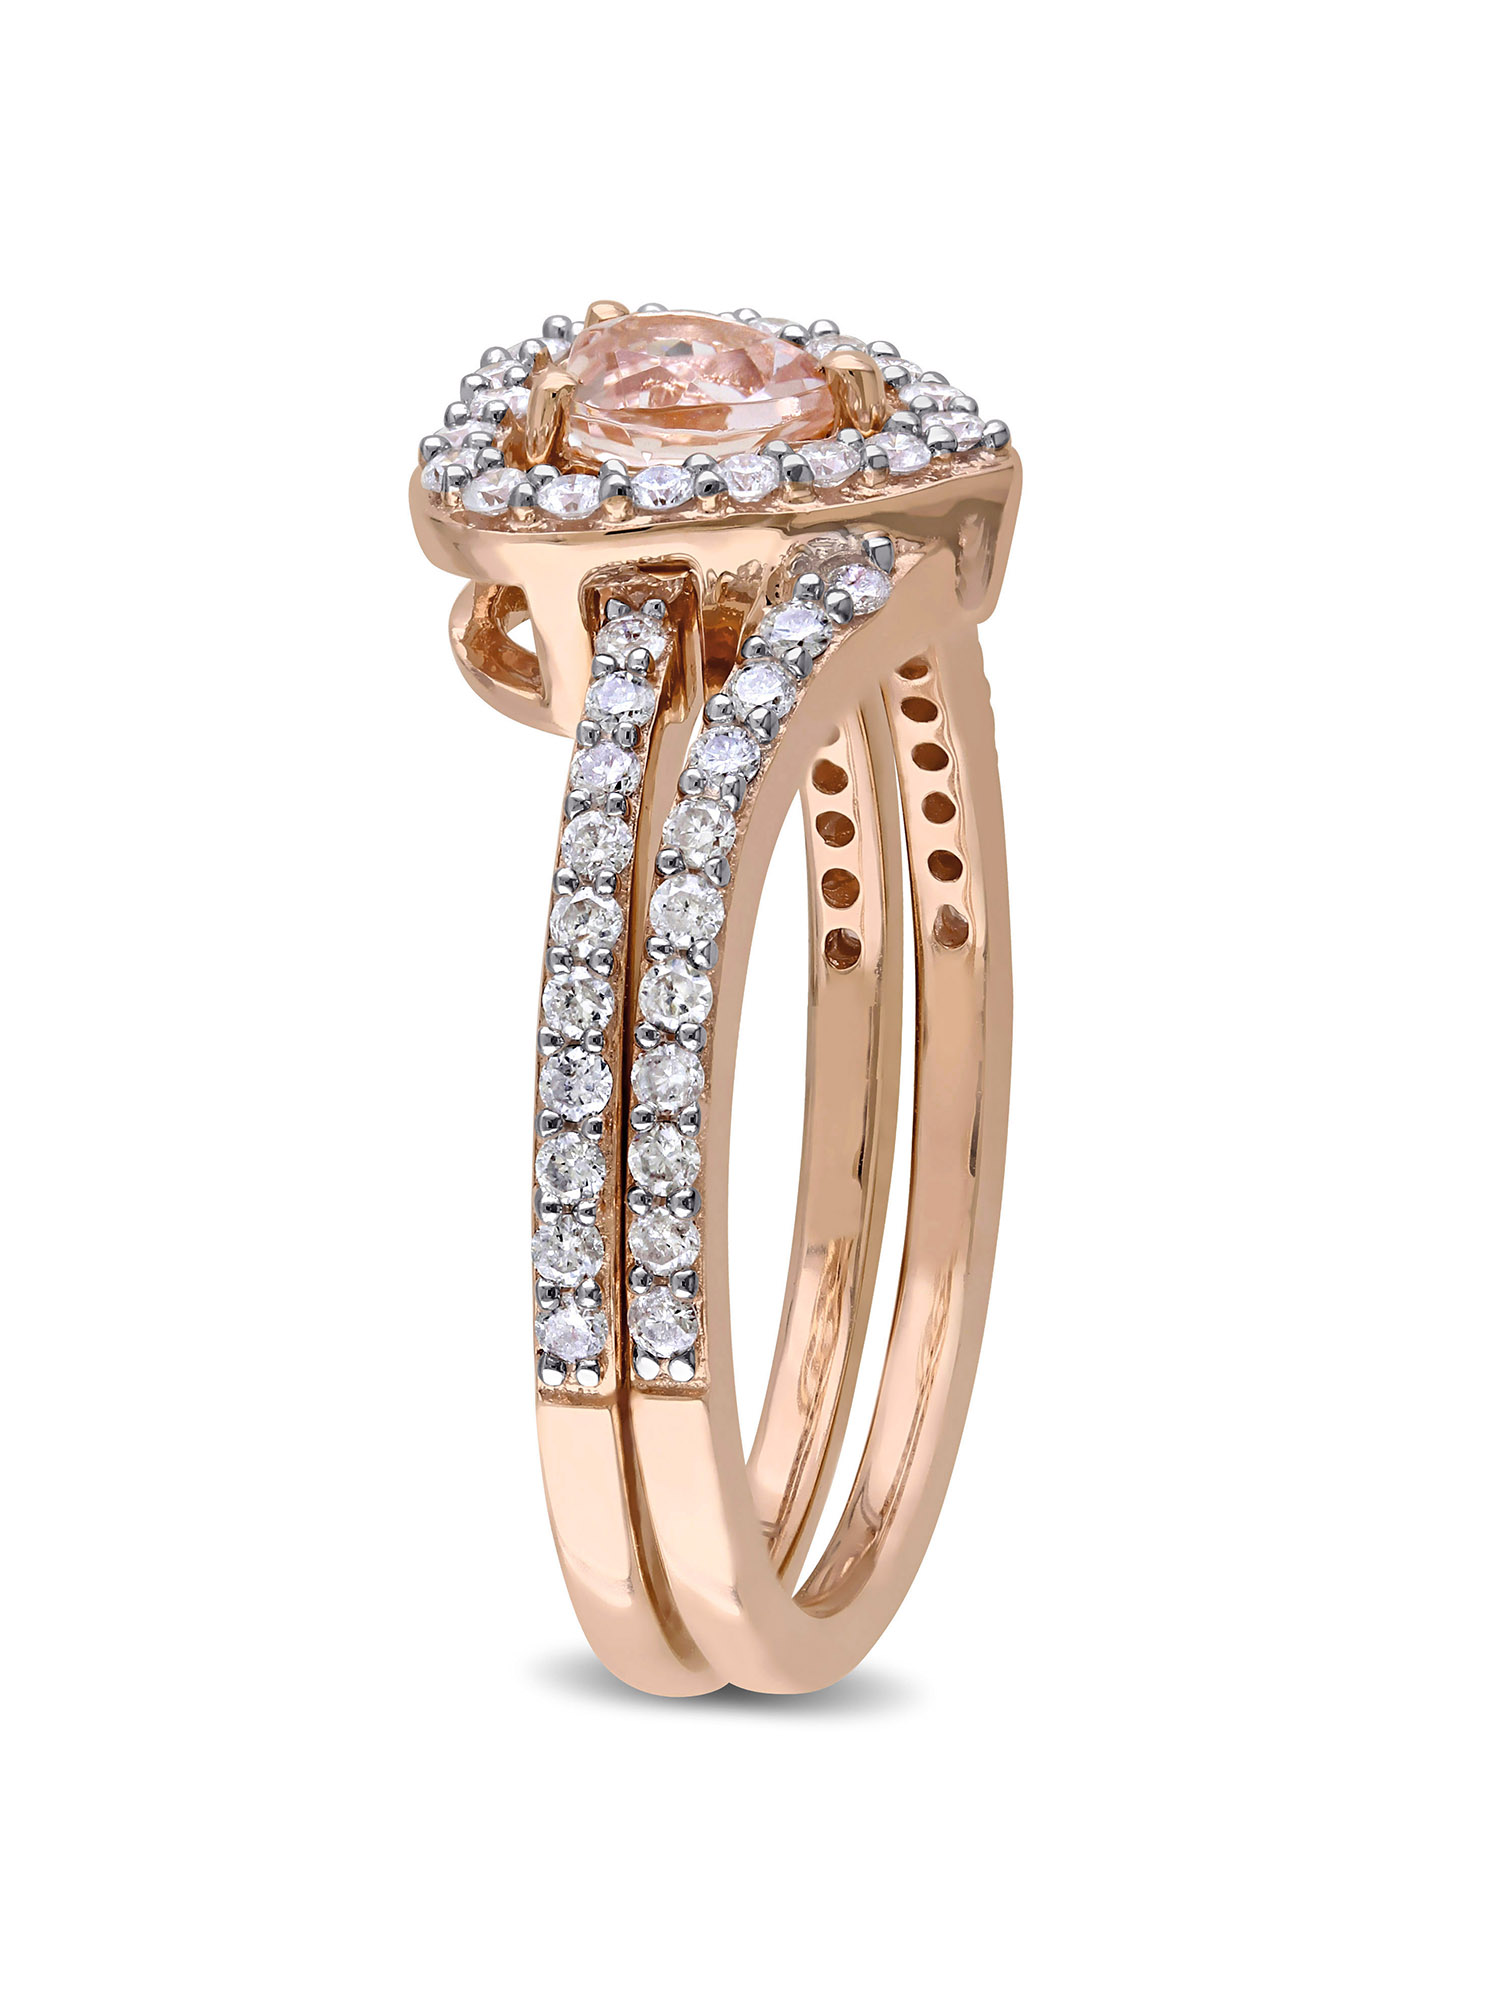 1/2 Carat T.G.W. Morganite and 1/2 Carat T.W. Diamond 10kt Rose Gold Interlocking Heart Bridal Set